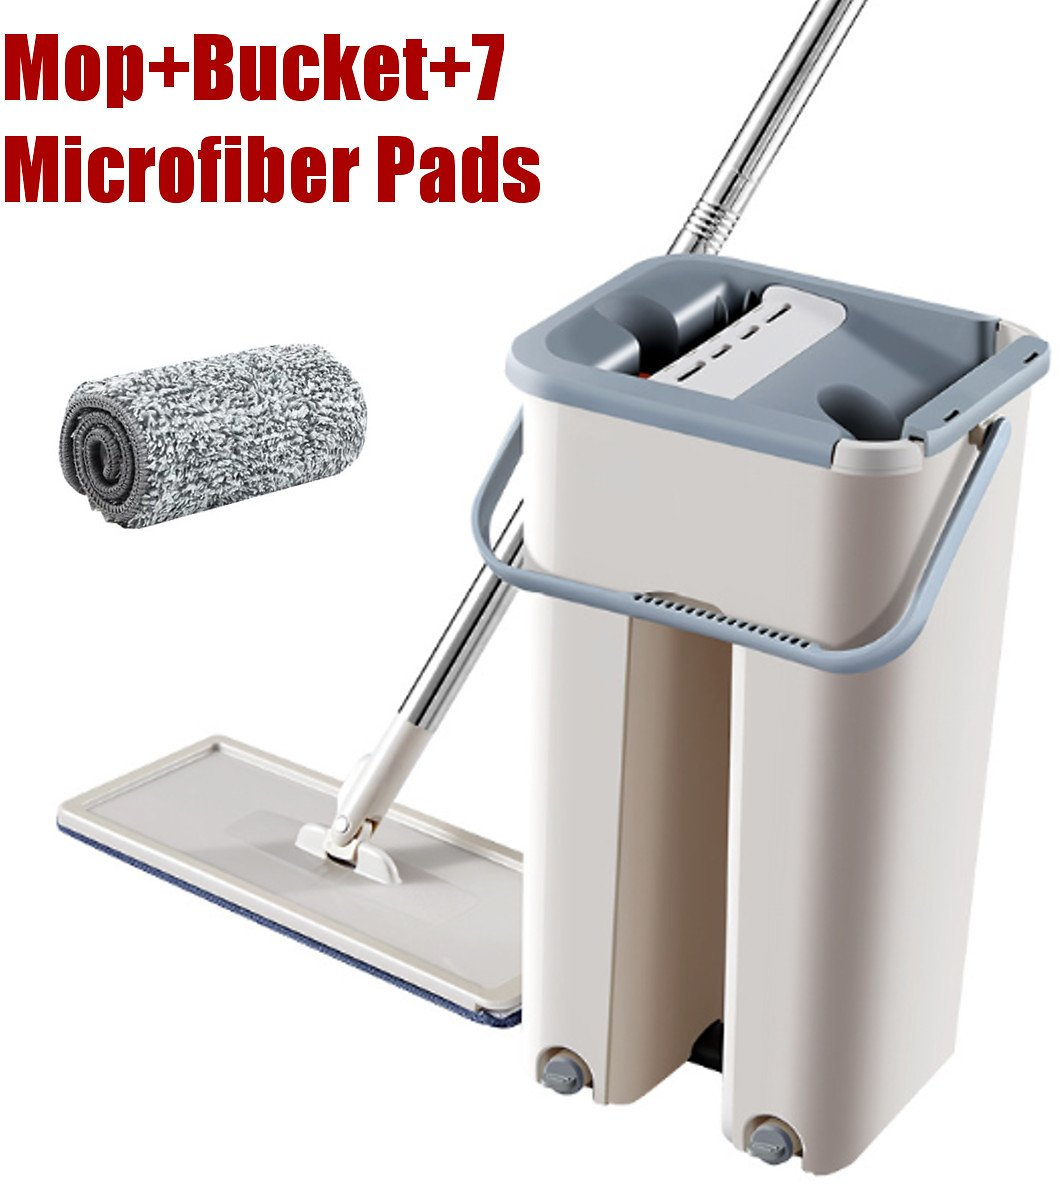 Microfiber Flat Mop with Bucket, Cleaning Squeeze Hand Free Floor Mop, with Reusable Mop Pads, Stainless Steel Handle